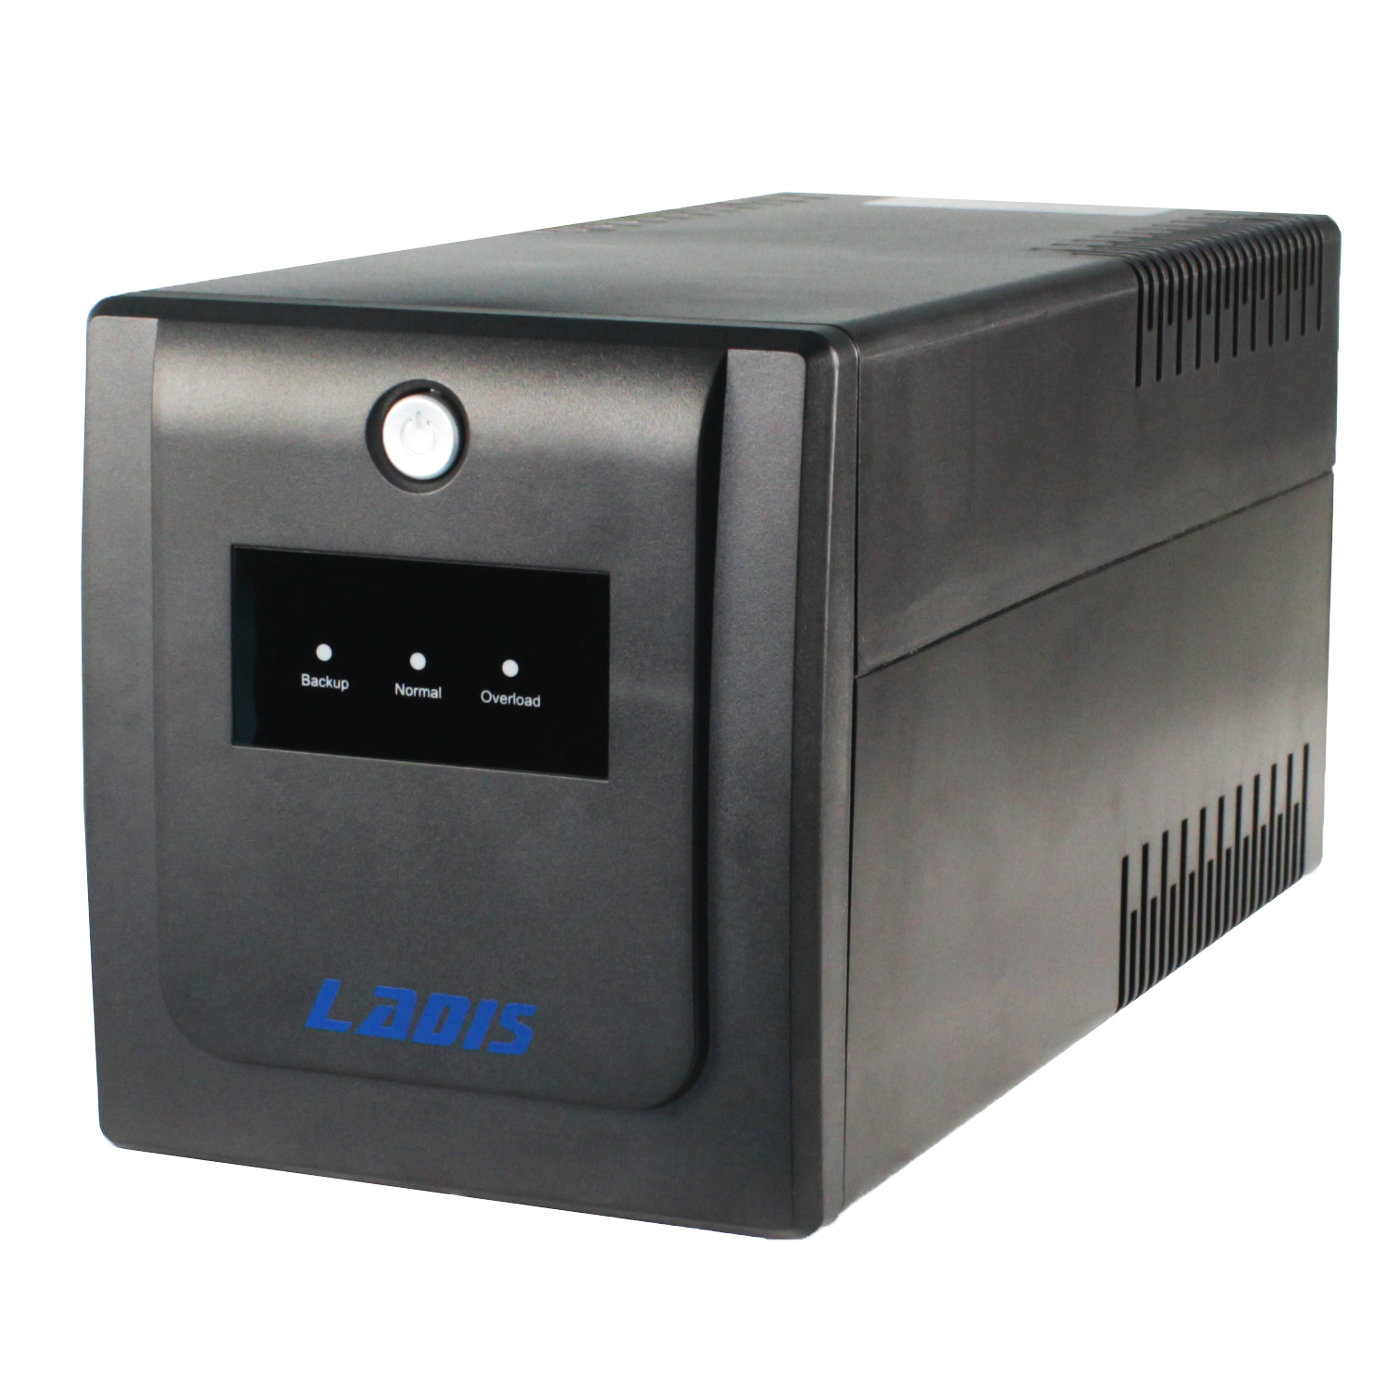 Radius ups uninterruptible power supply D1000 regulator 1000VA600W imported battery single computer 50 minutes